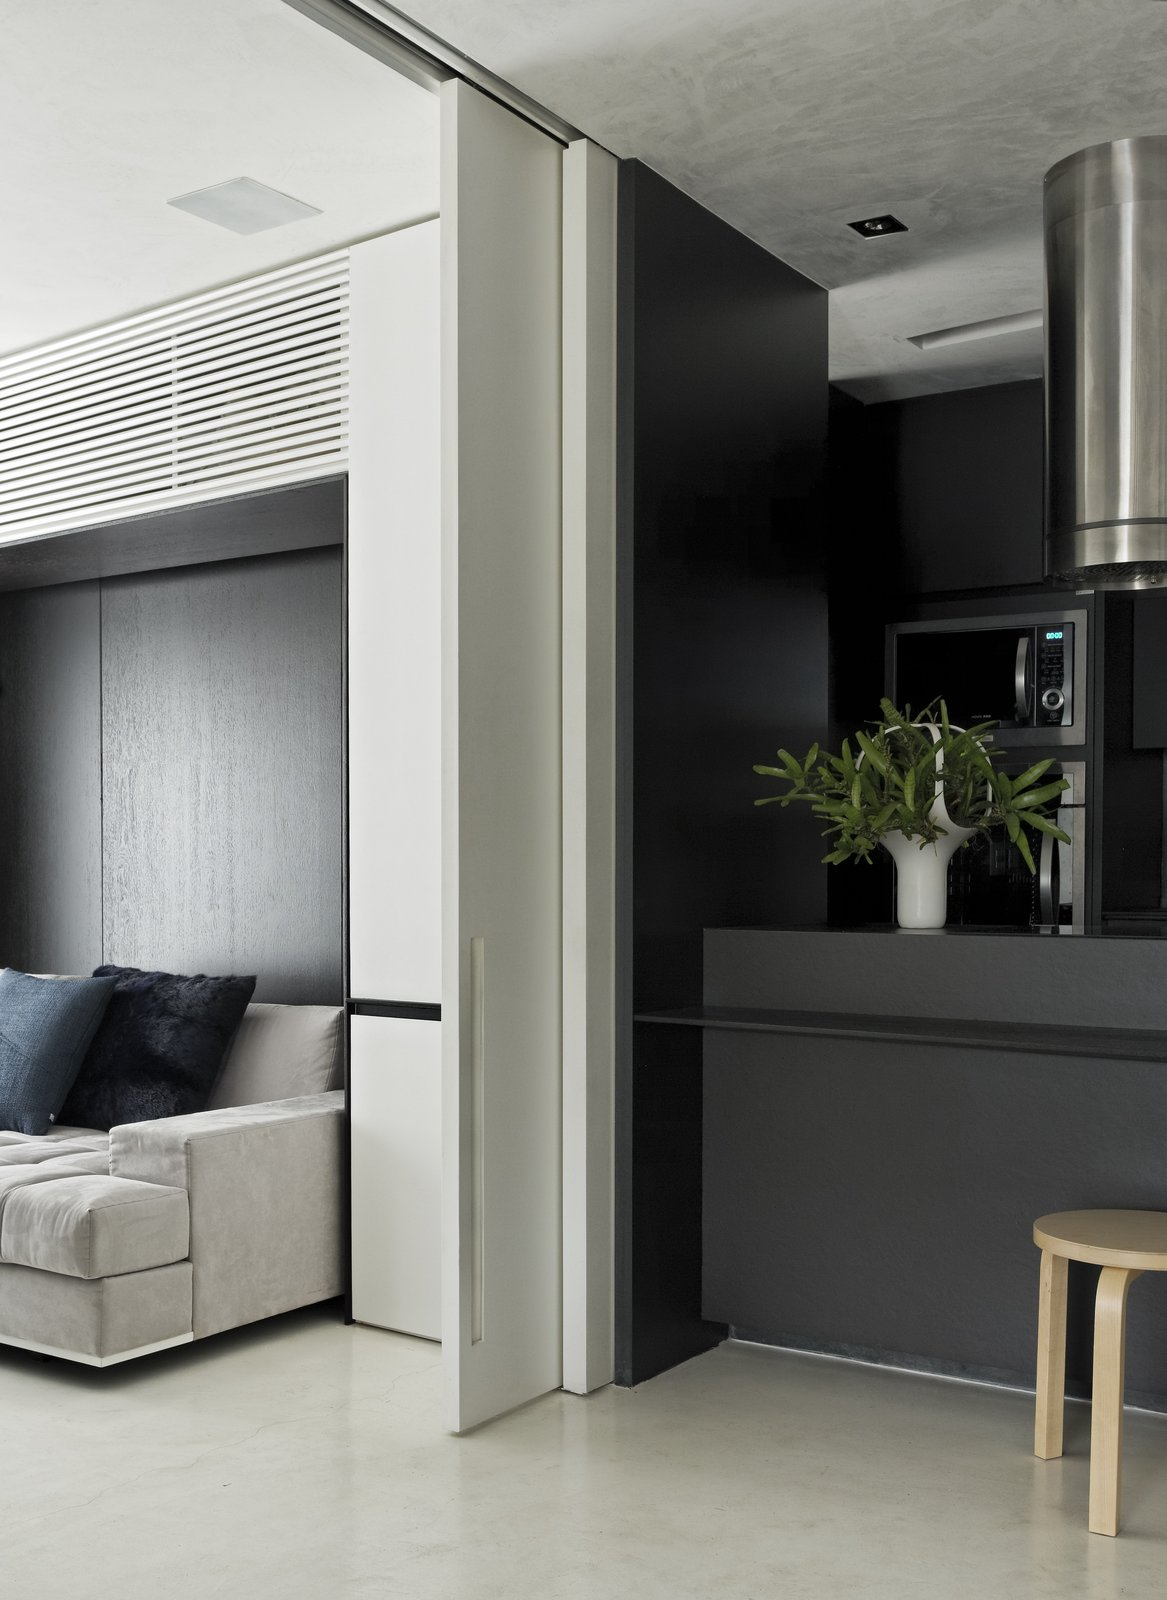 A sliding door to the guest bedroom makes this flexible area even more accessible. A burnt cement floor connects this room to the kitchen.